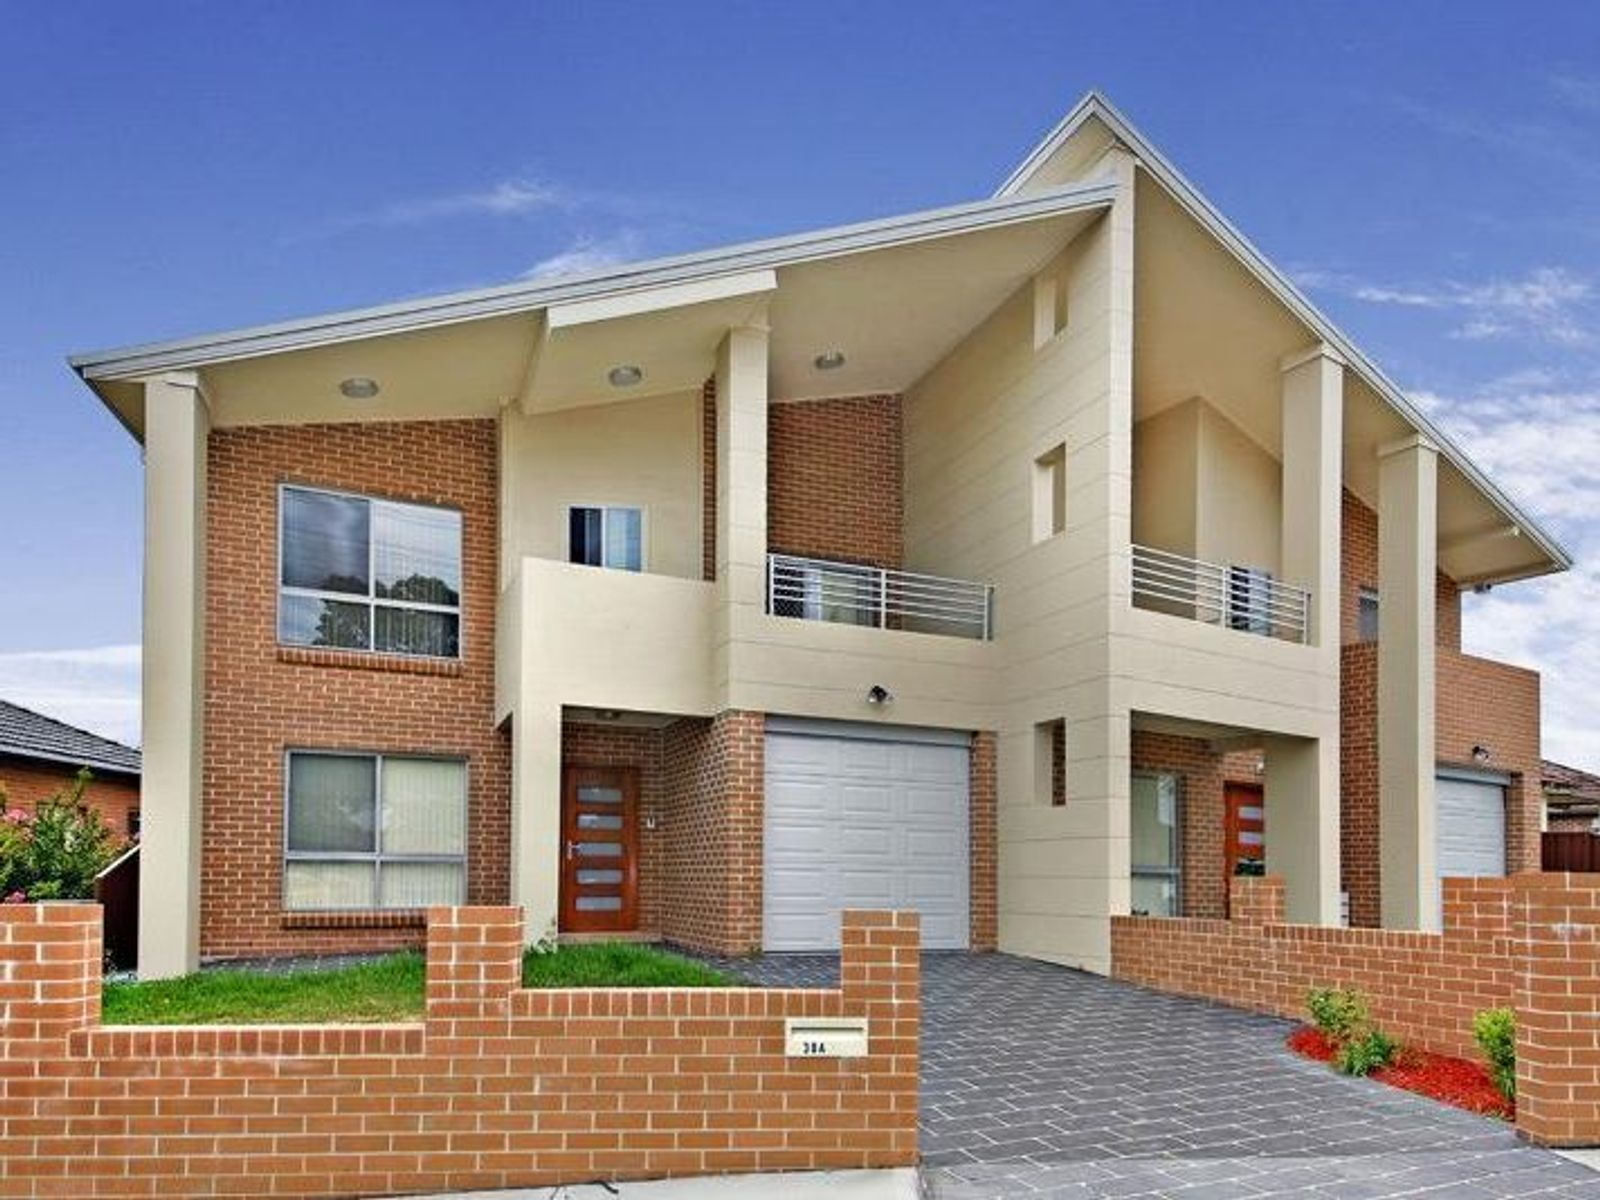 38A Sphinx Avenue, Revesby, NSW 2212